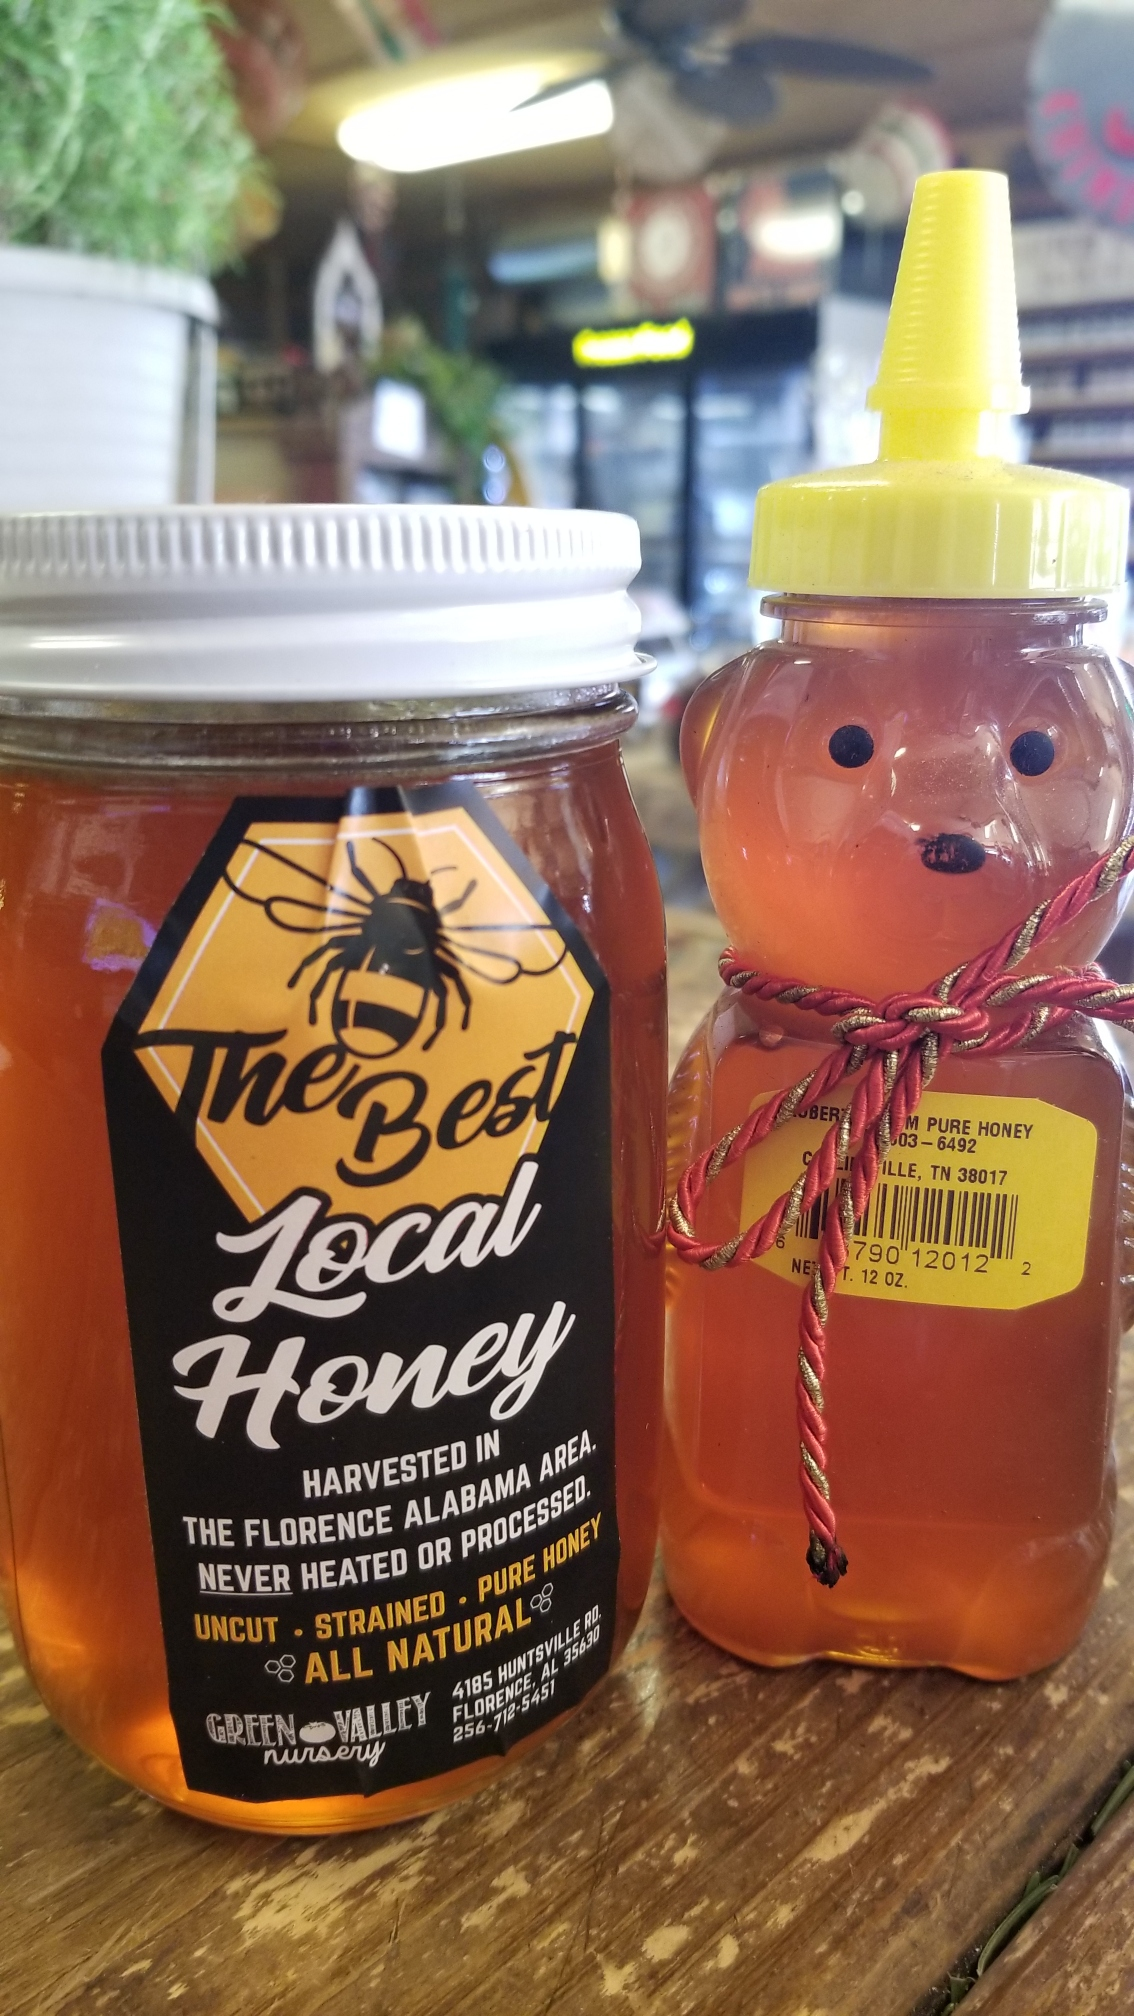 Local Honey - $10 and $7